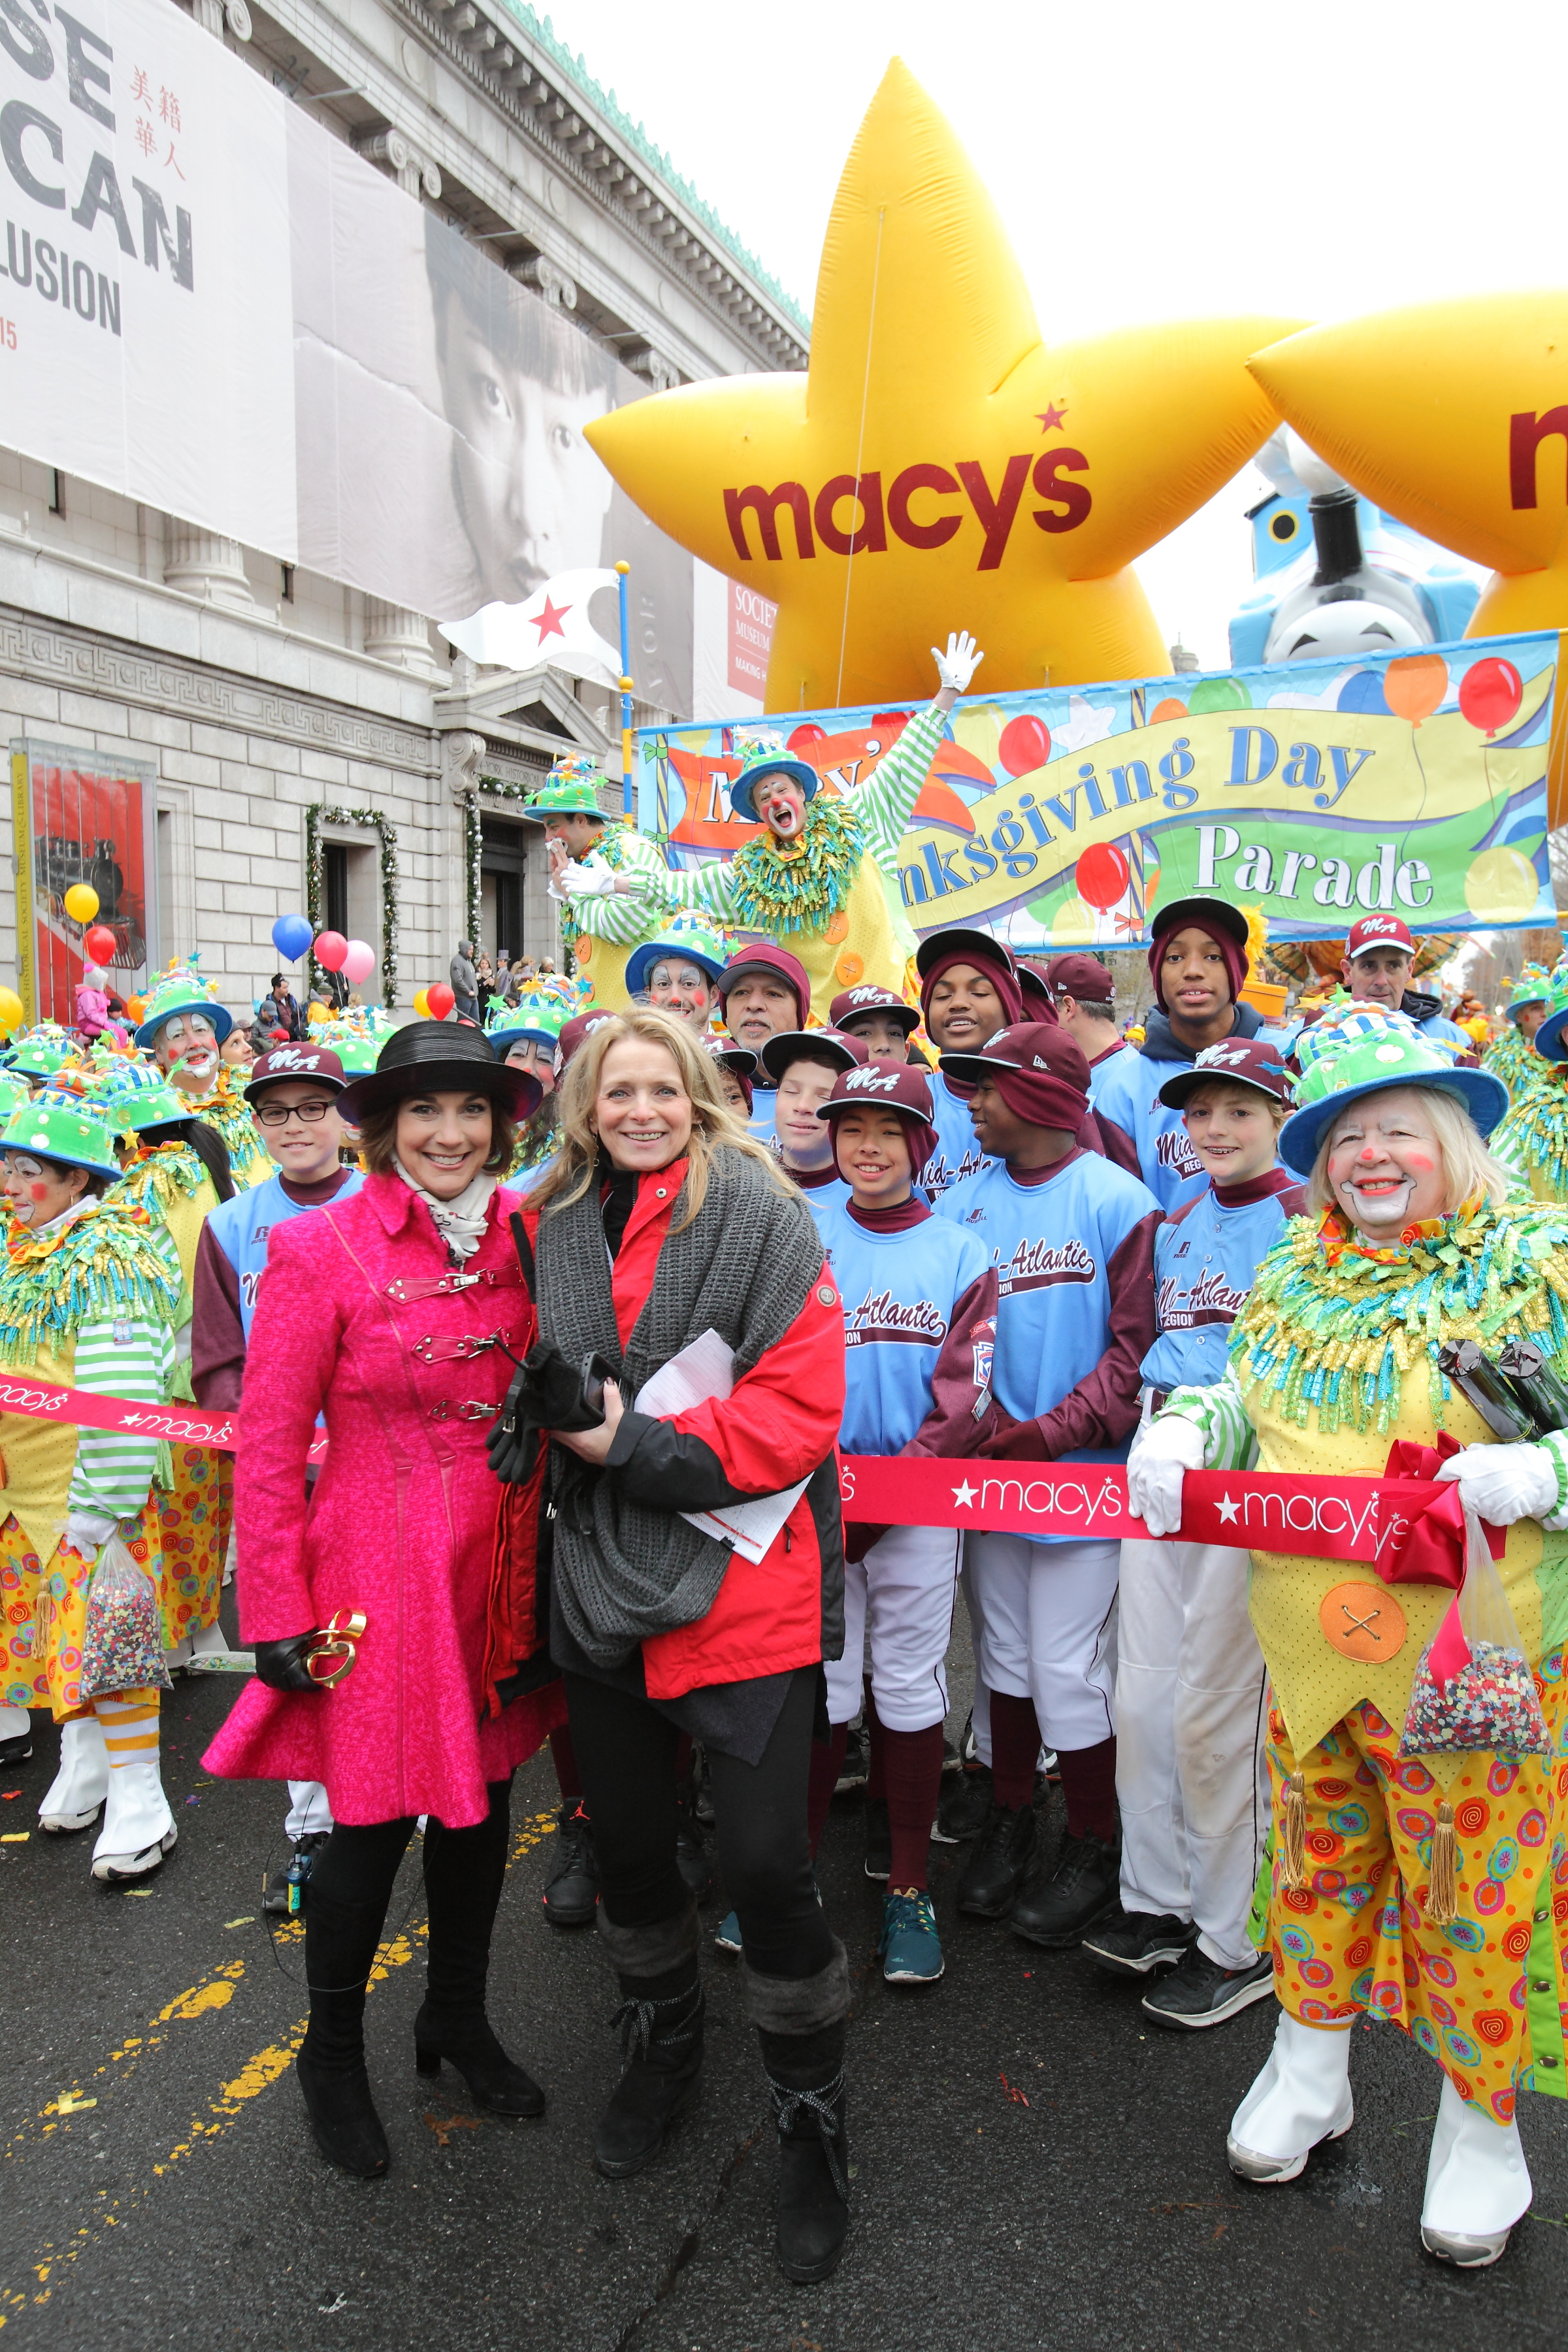 Martine Reardon with Macy's Amy Kule [left] at the Macy's Thanksgiving Parade in 2014.